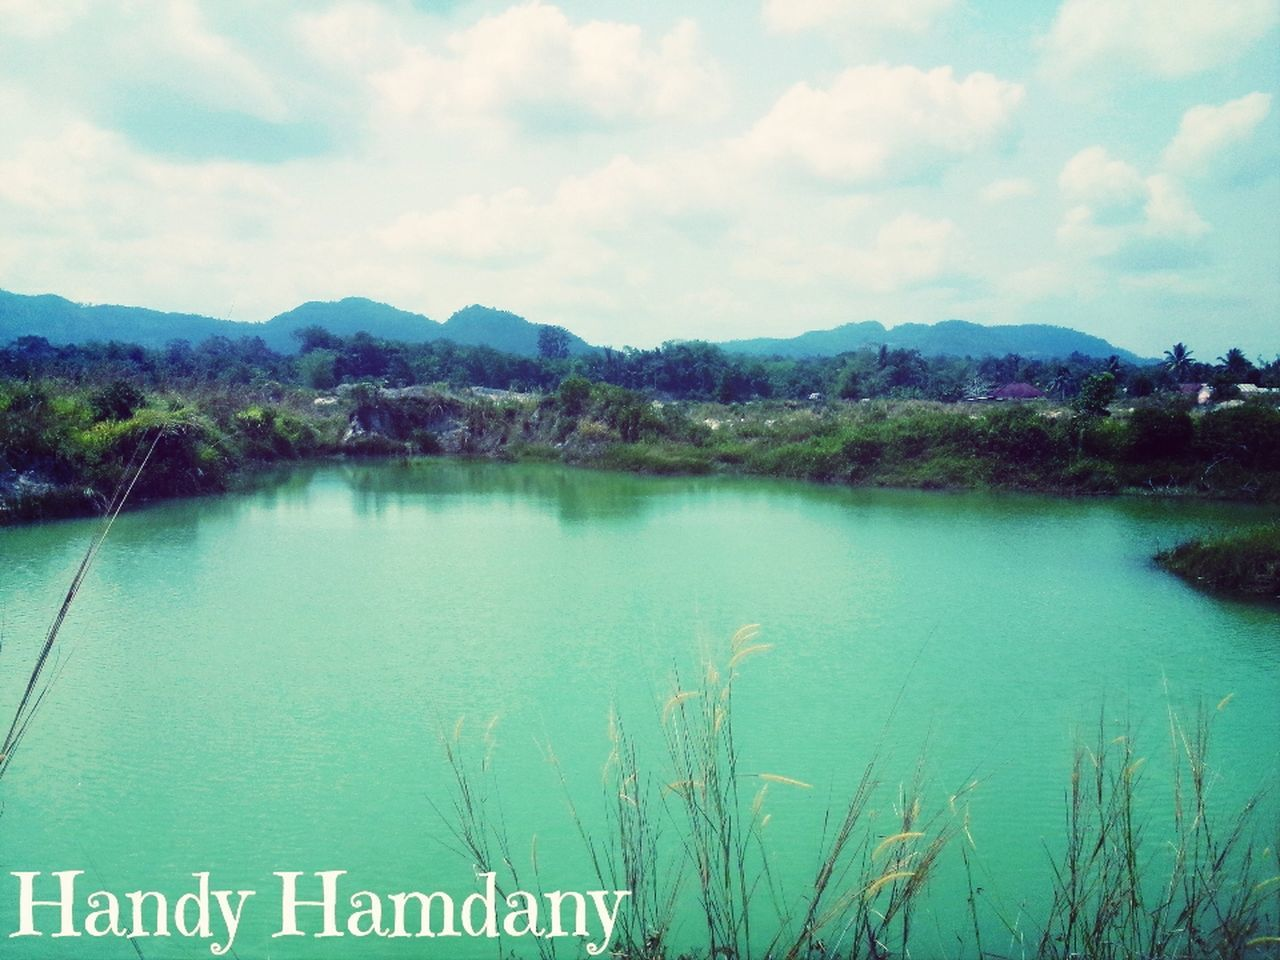 water, lake, day, outdoors, tranquility, scenics, tranquil scene, nature, no people, grass, landscape, beauty in nature, sky, tree